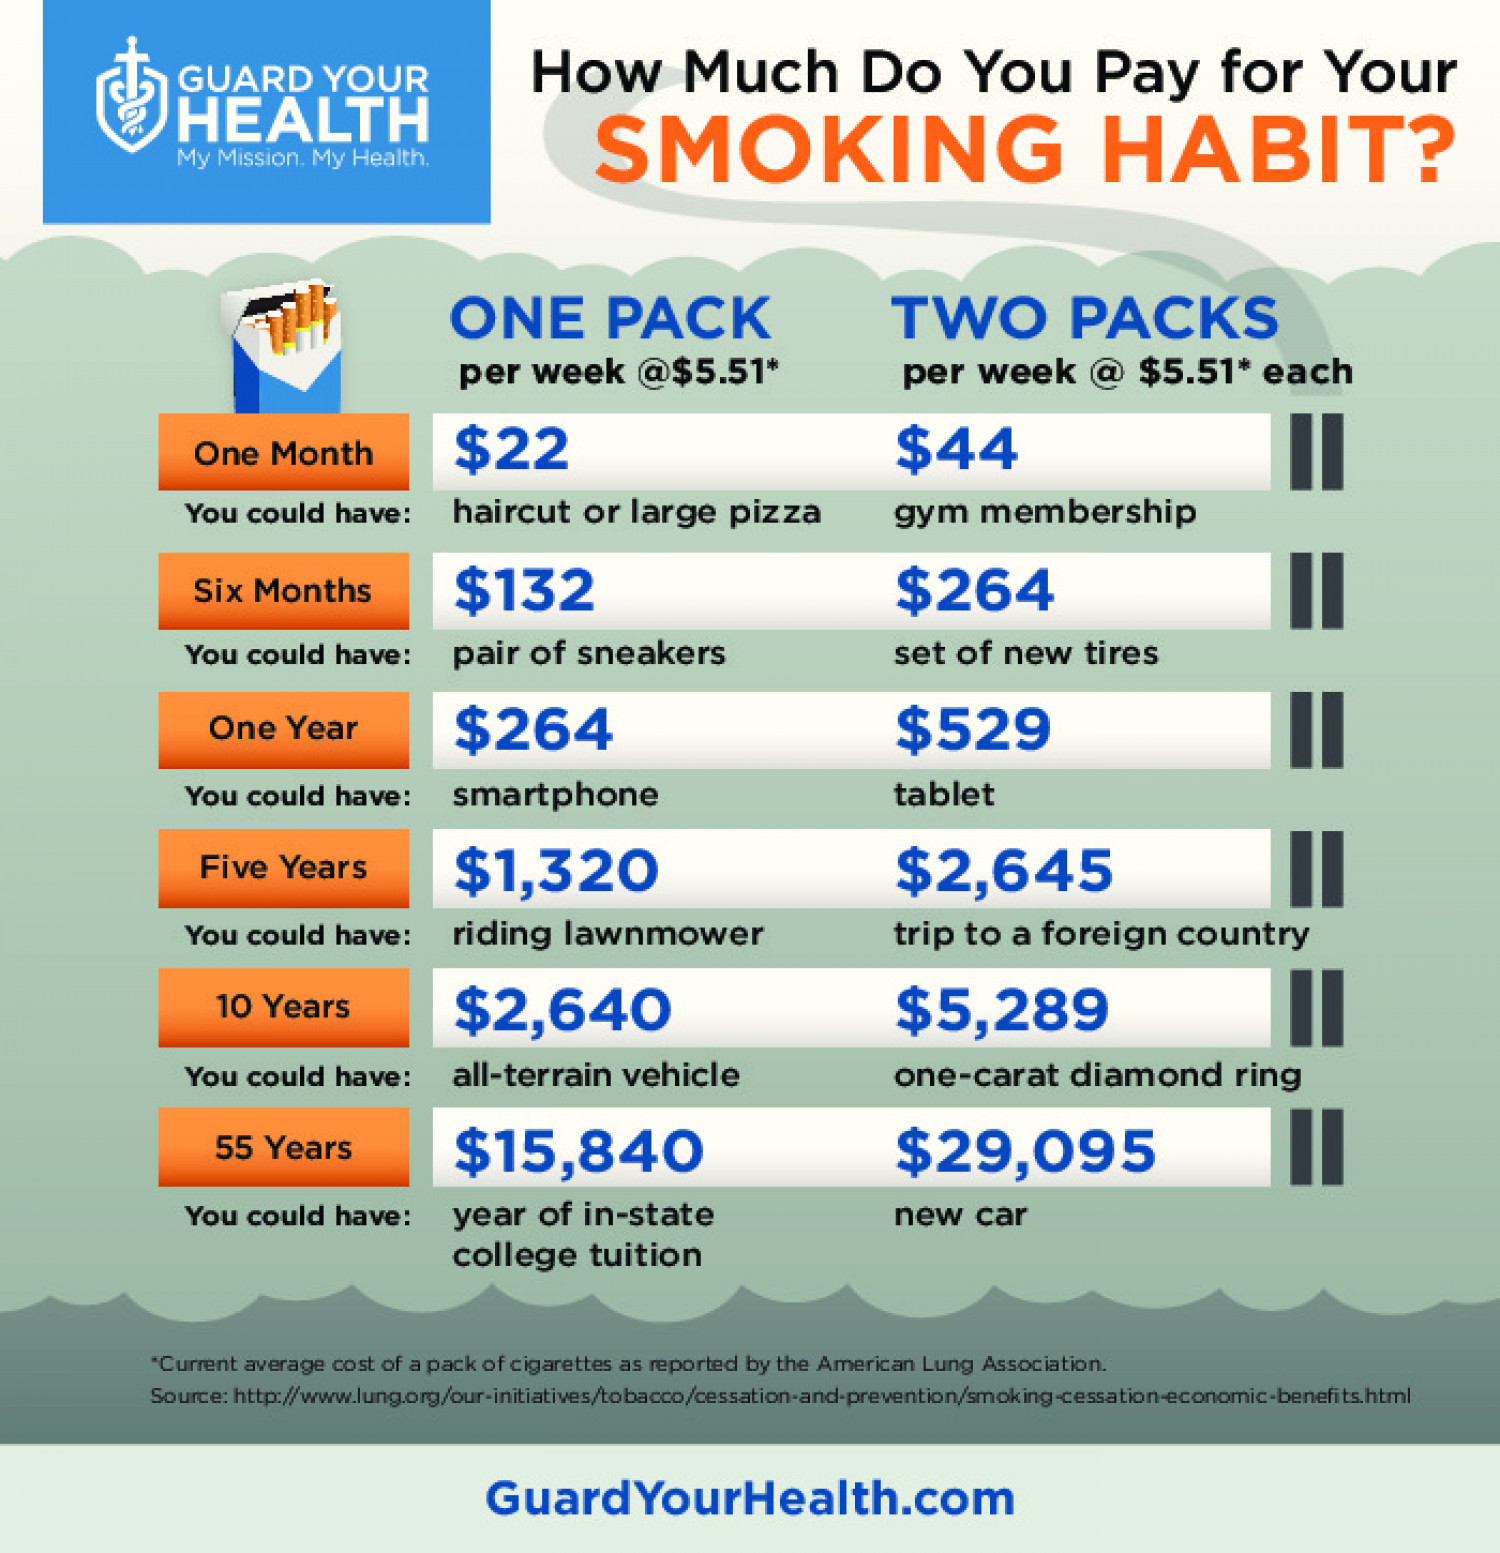 How Much Do You Pay For Your Smoking Habit